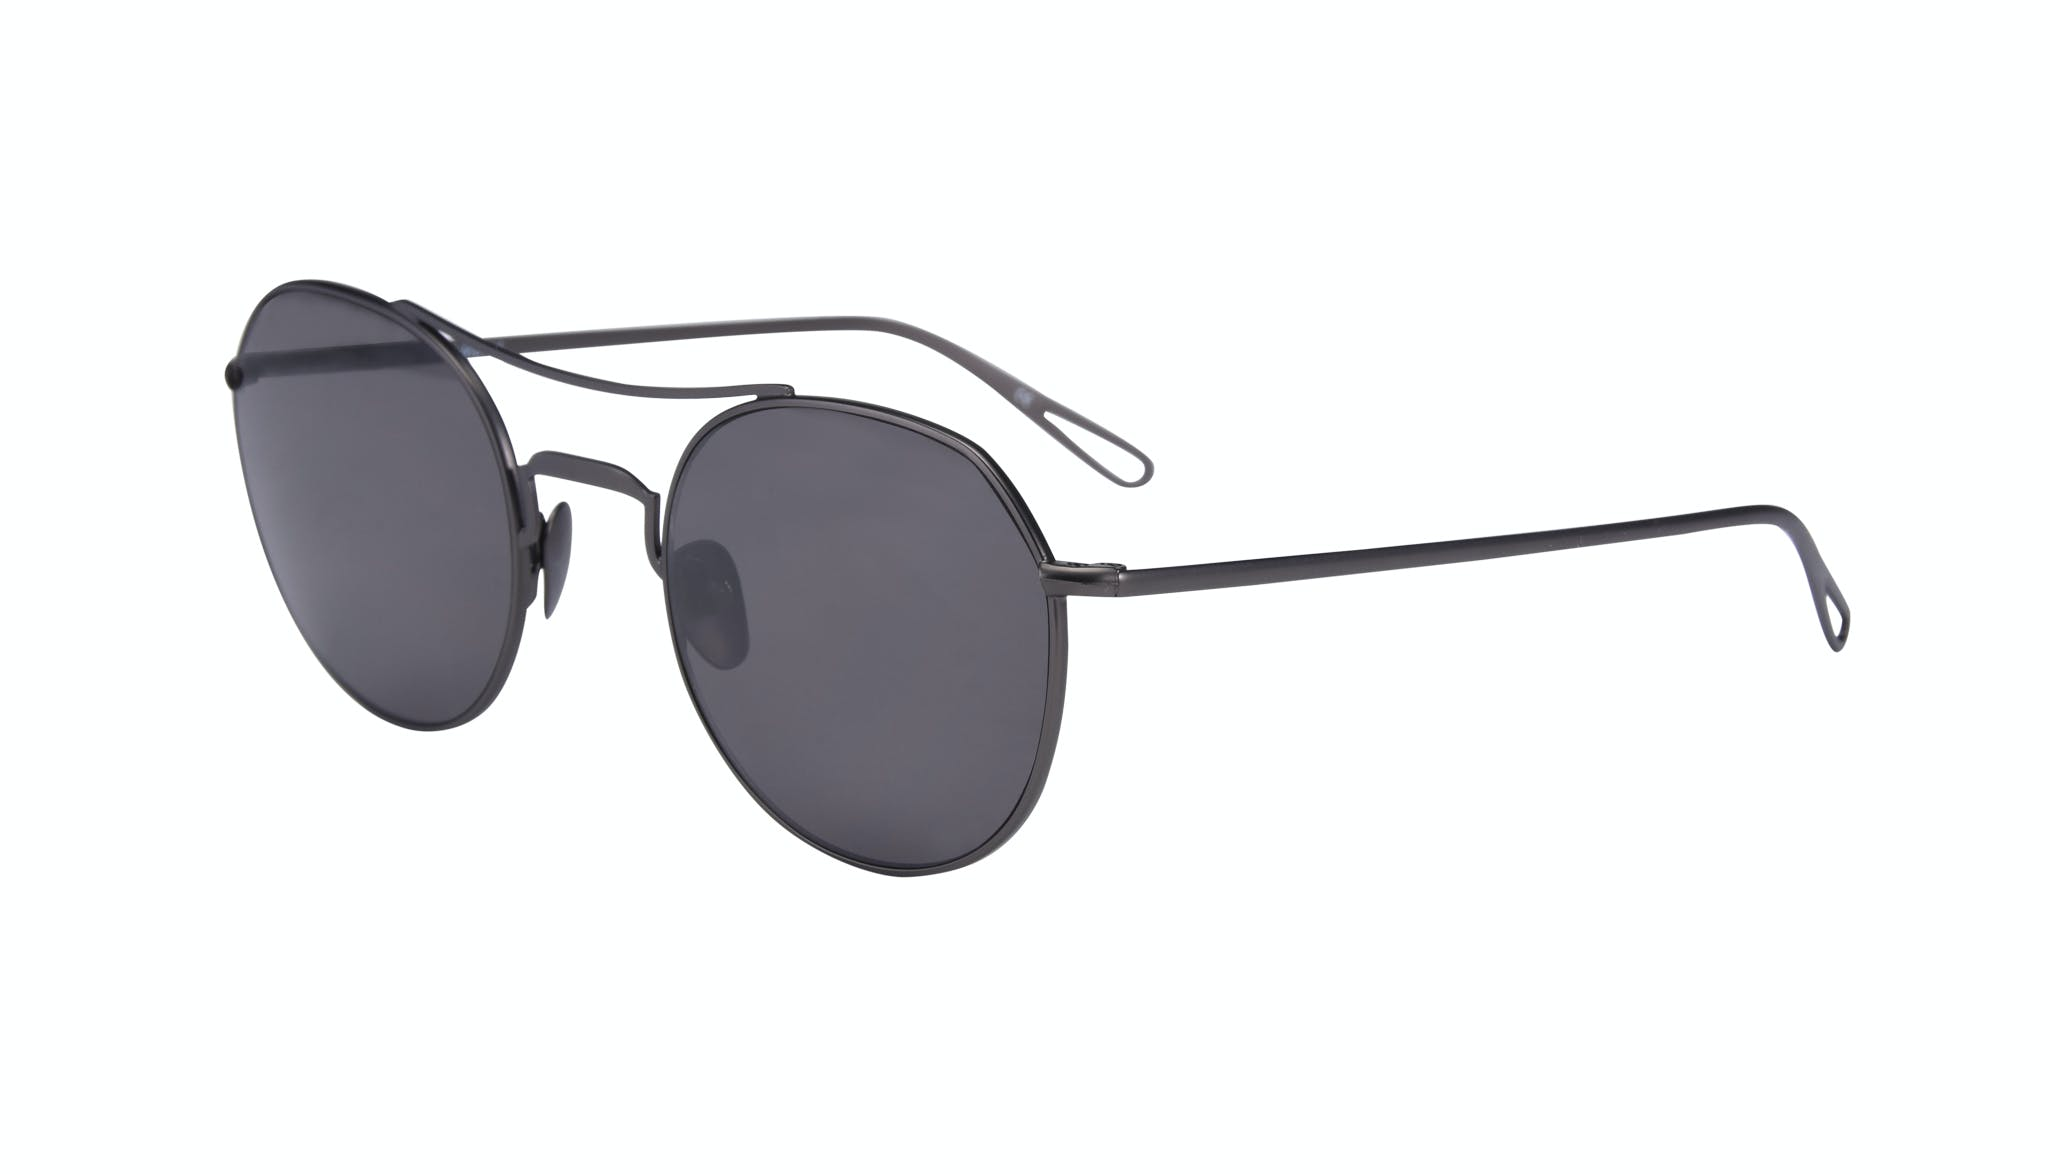 Affordable Fashion Glasses Aviator Sunglasses Men Force Gun Metal Tilt